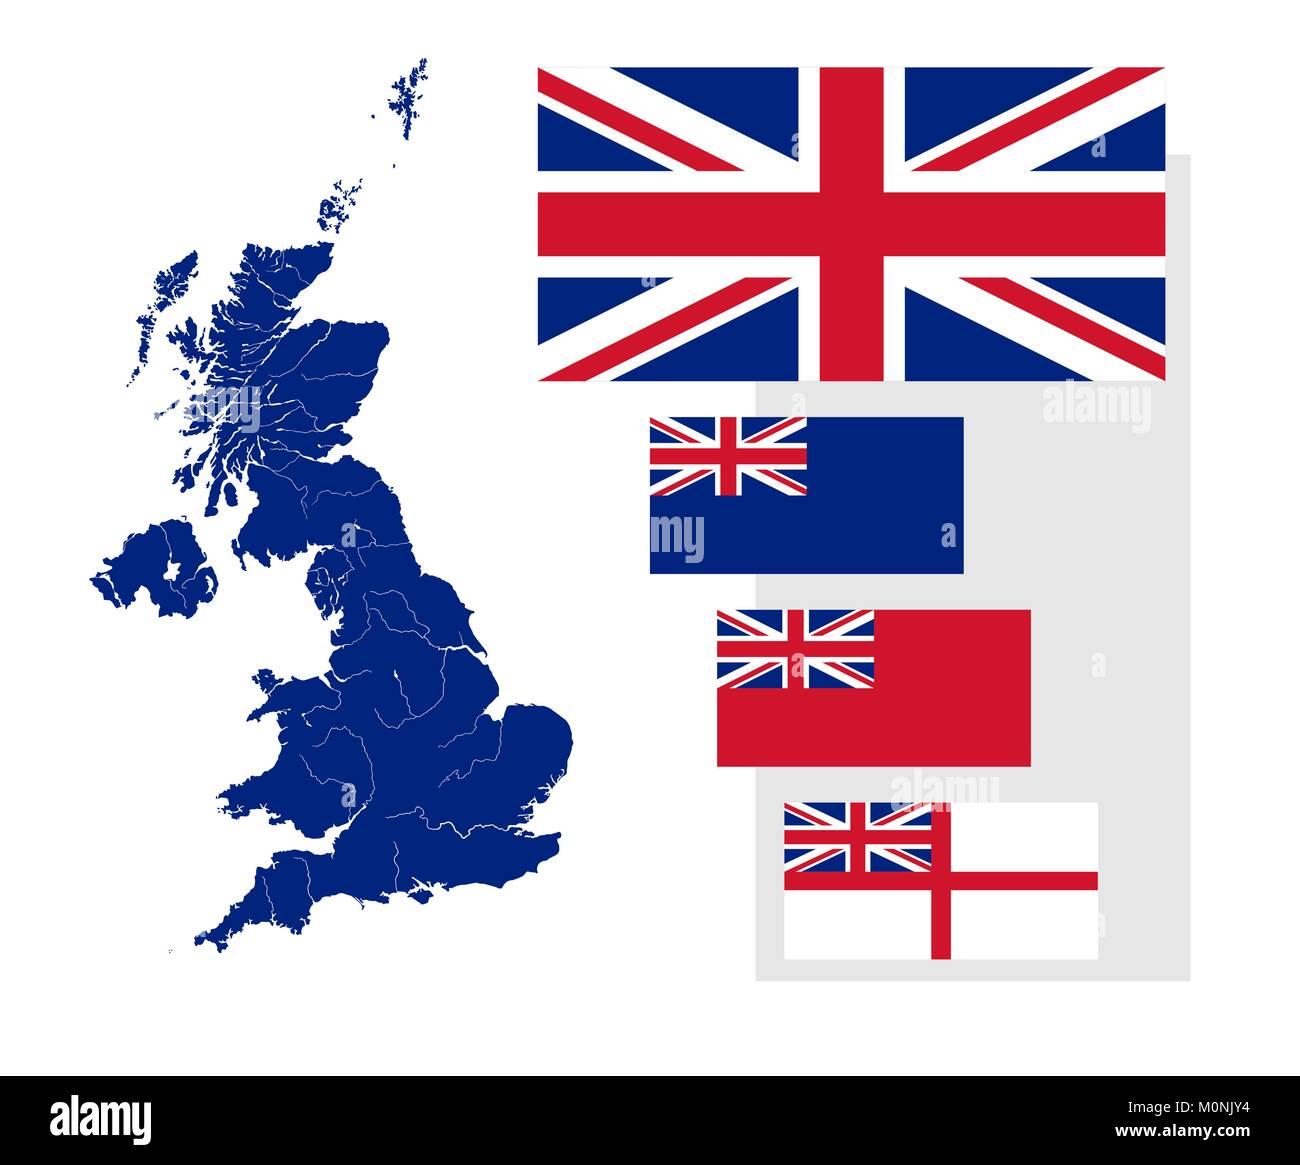 Map of the United Kingdom with rivers and four British flags - national flag, state ensign, civil ensign and naval - Stock Image